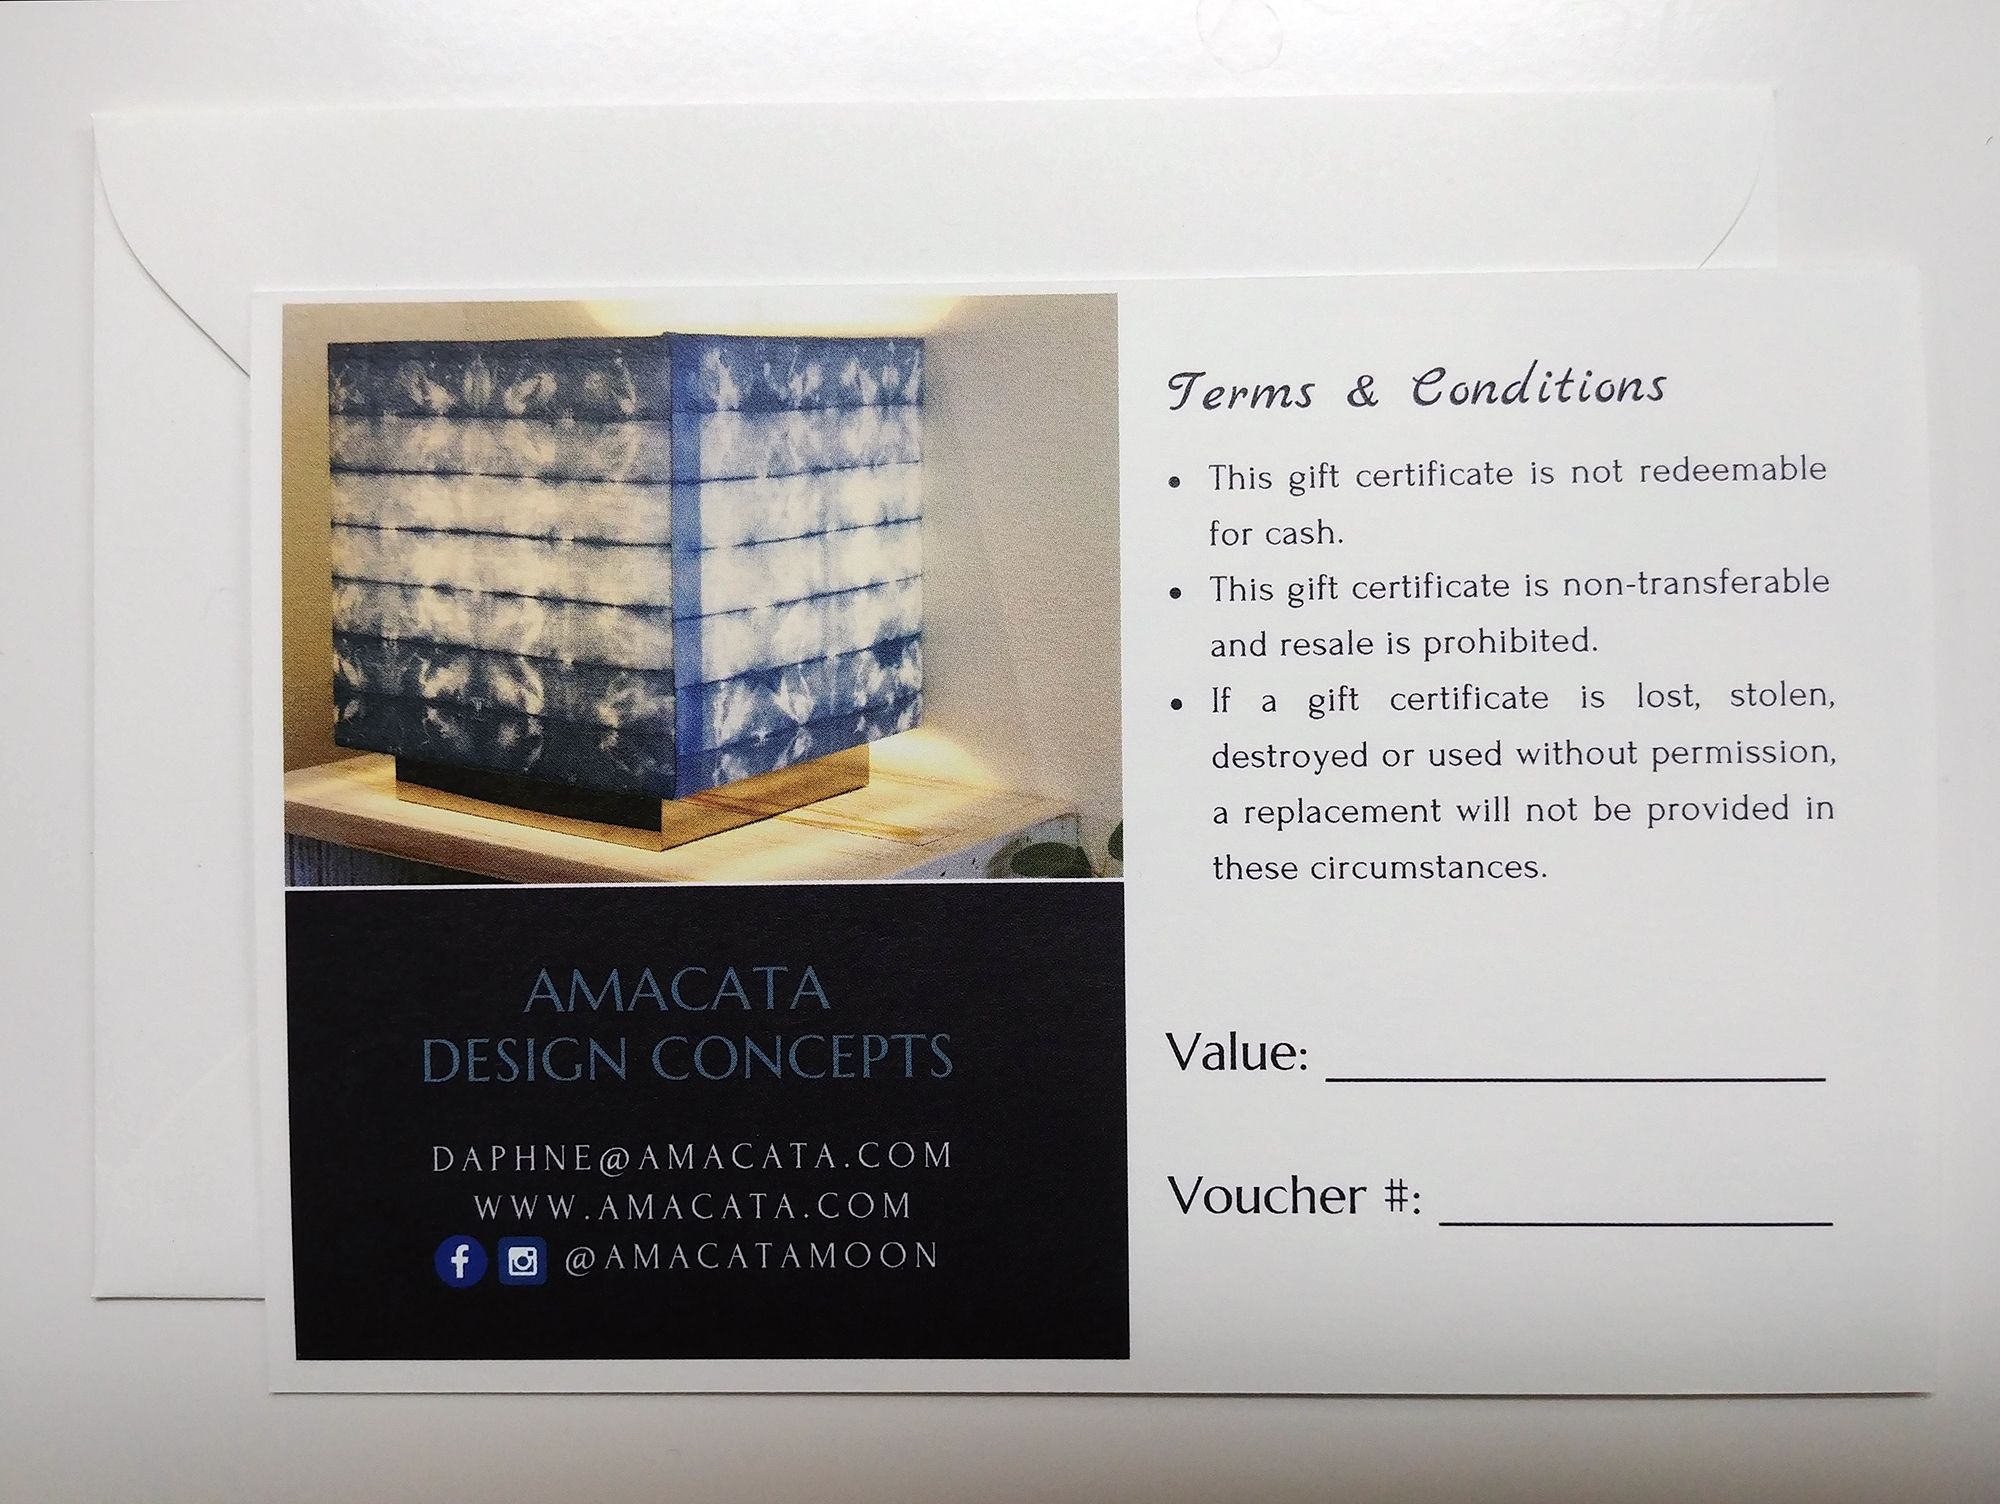 Amacata gift certificate